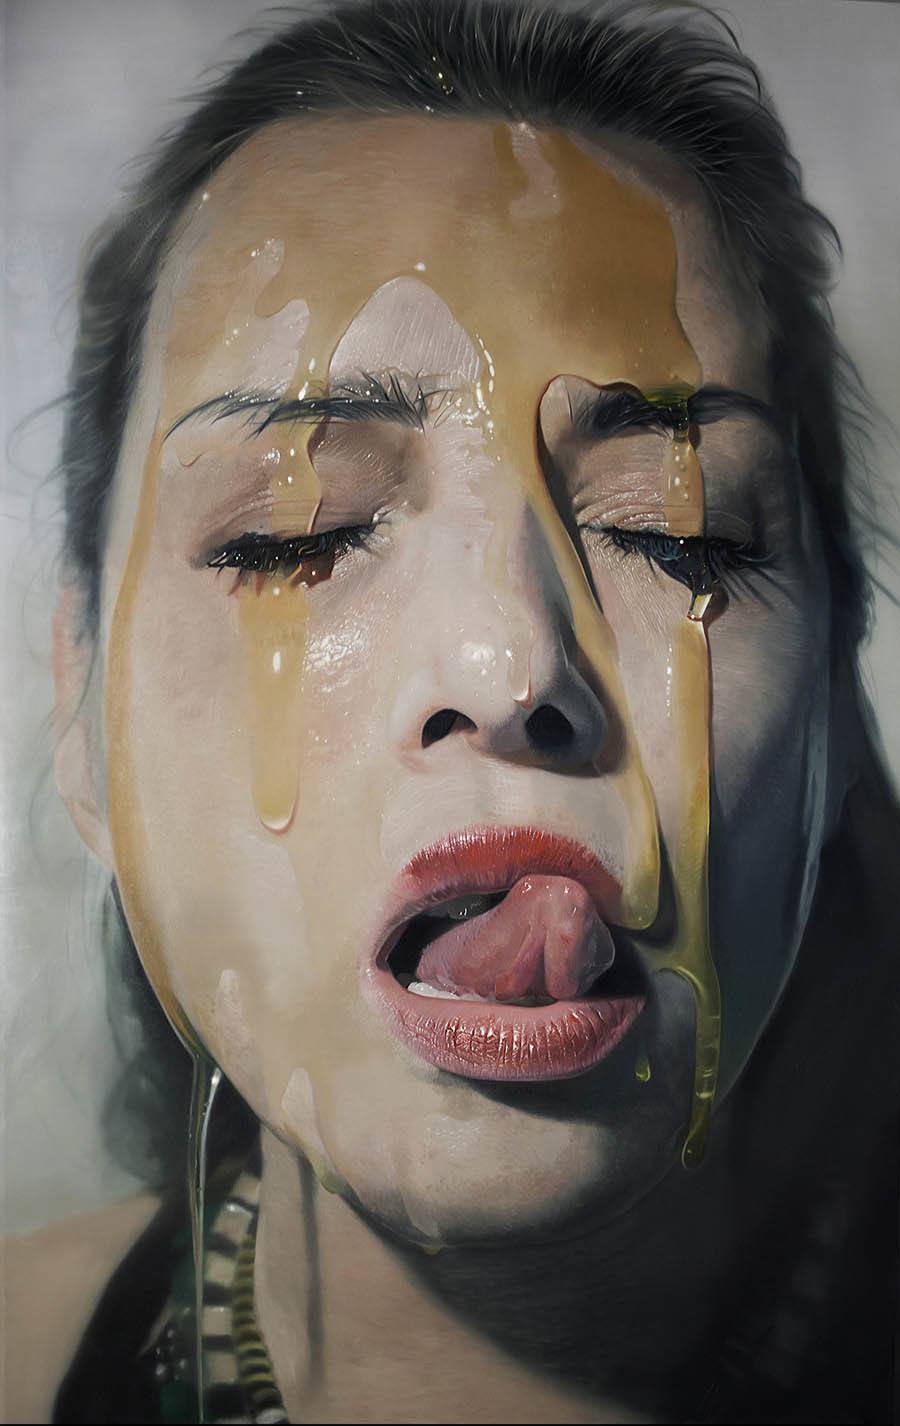 hyper realistic ecstasy of gold